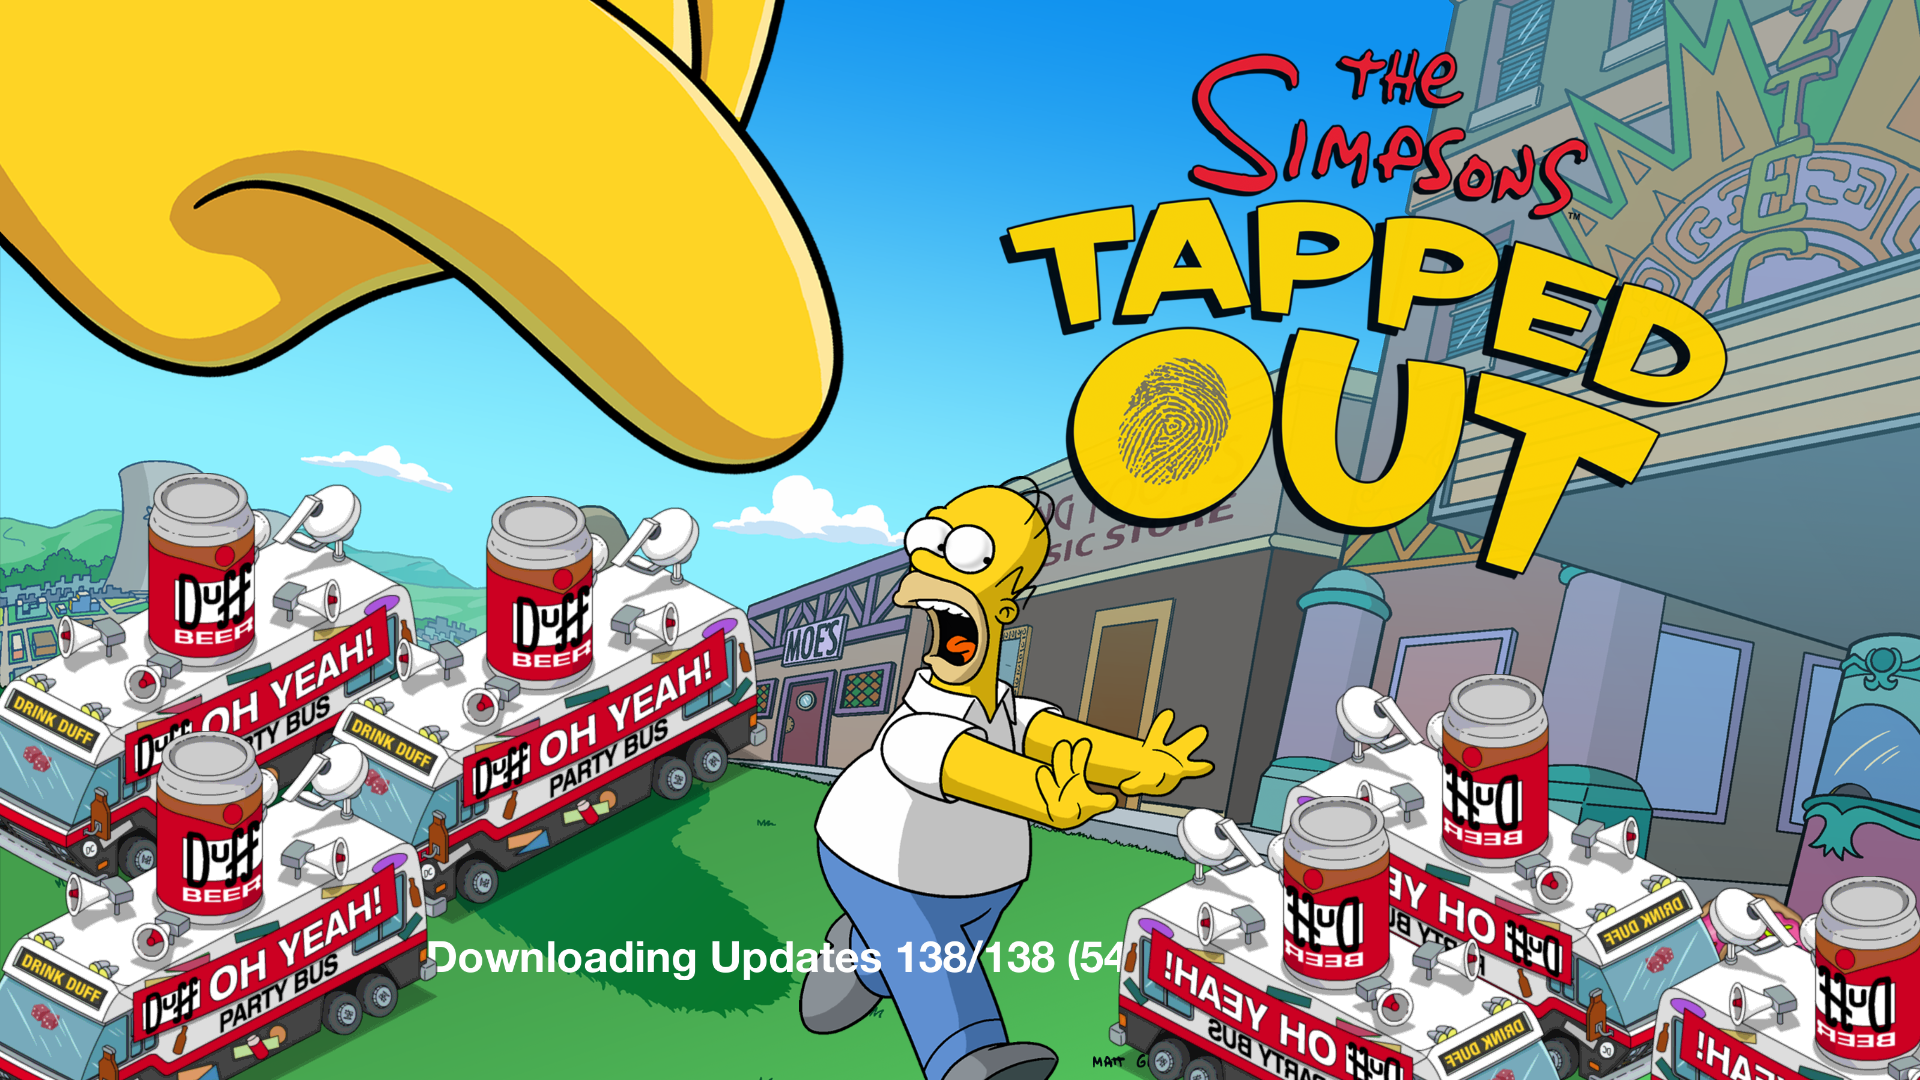 Die simpsons springfield casino update does 2 pair beat 3 of a kind in high card poker